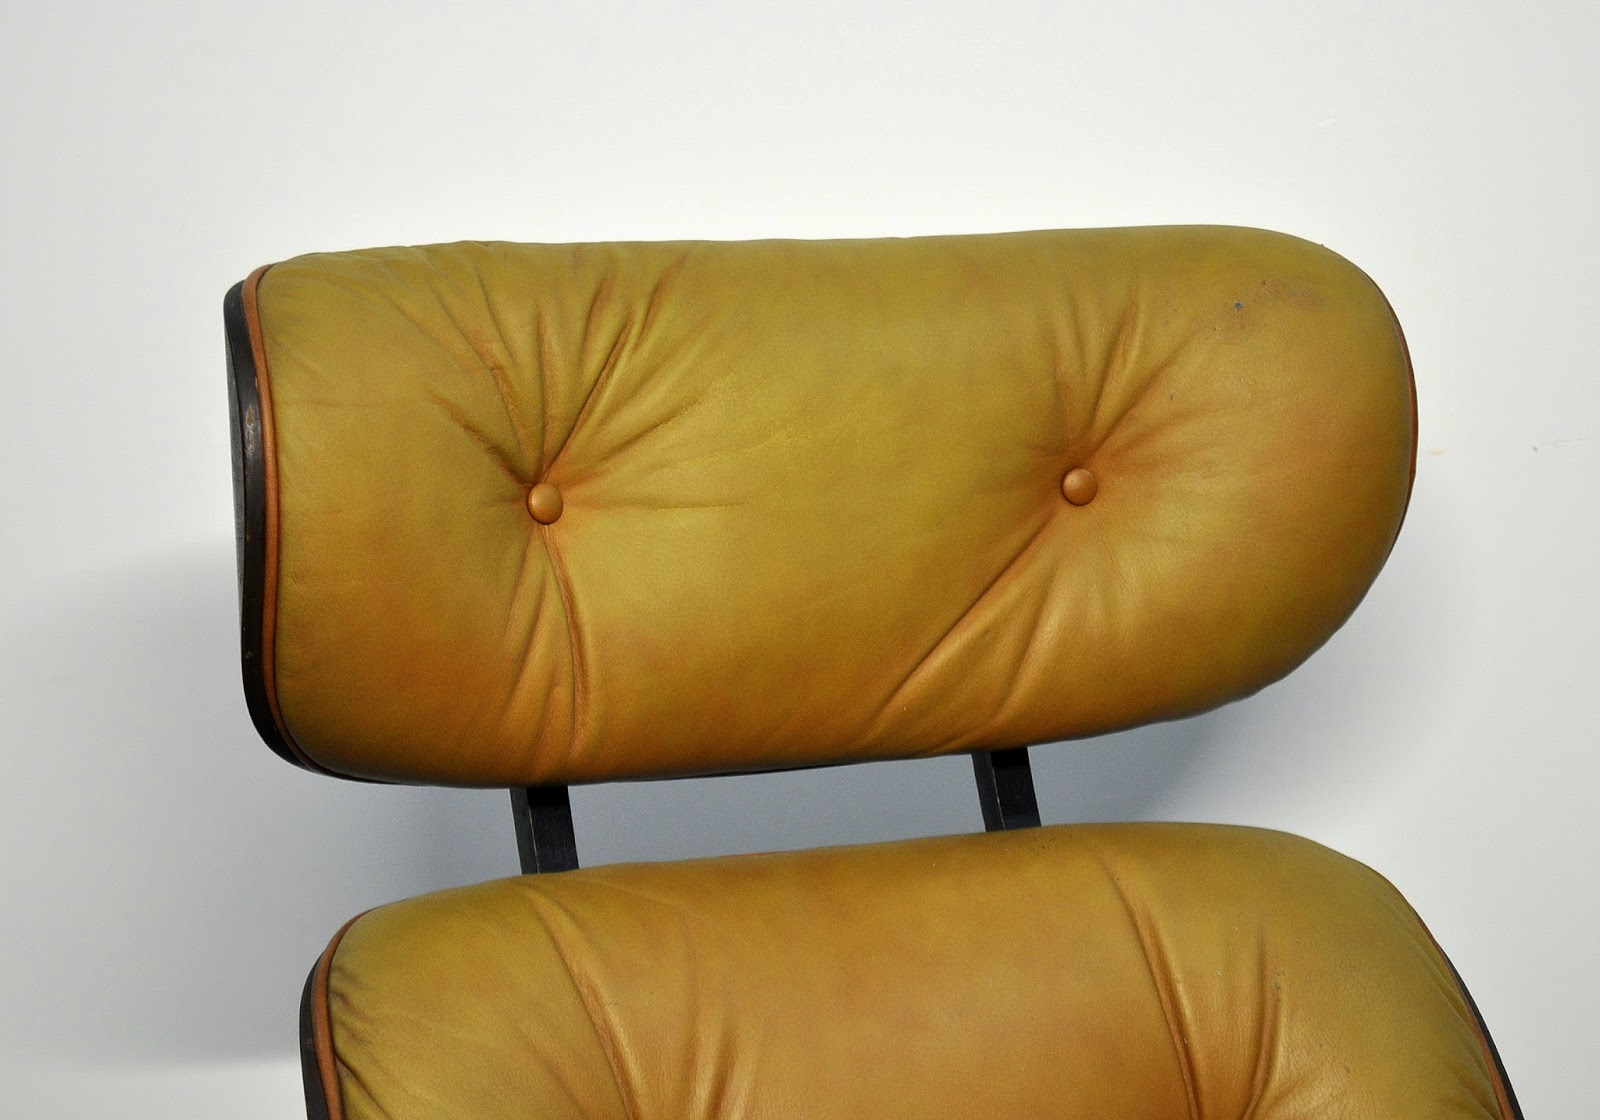 Selig Eames Chair Covers And Sashes Select Modern Leather Lounge Ottoman